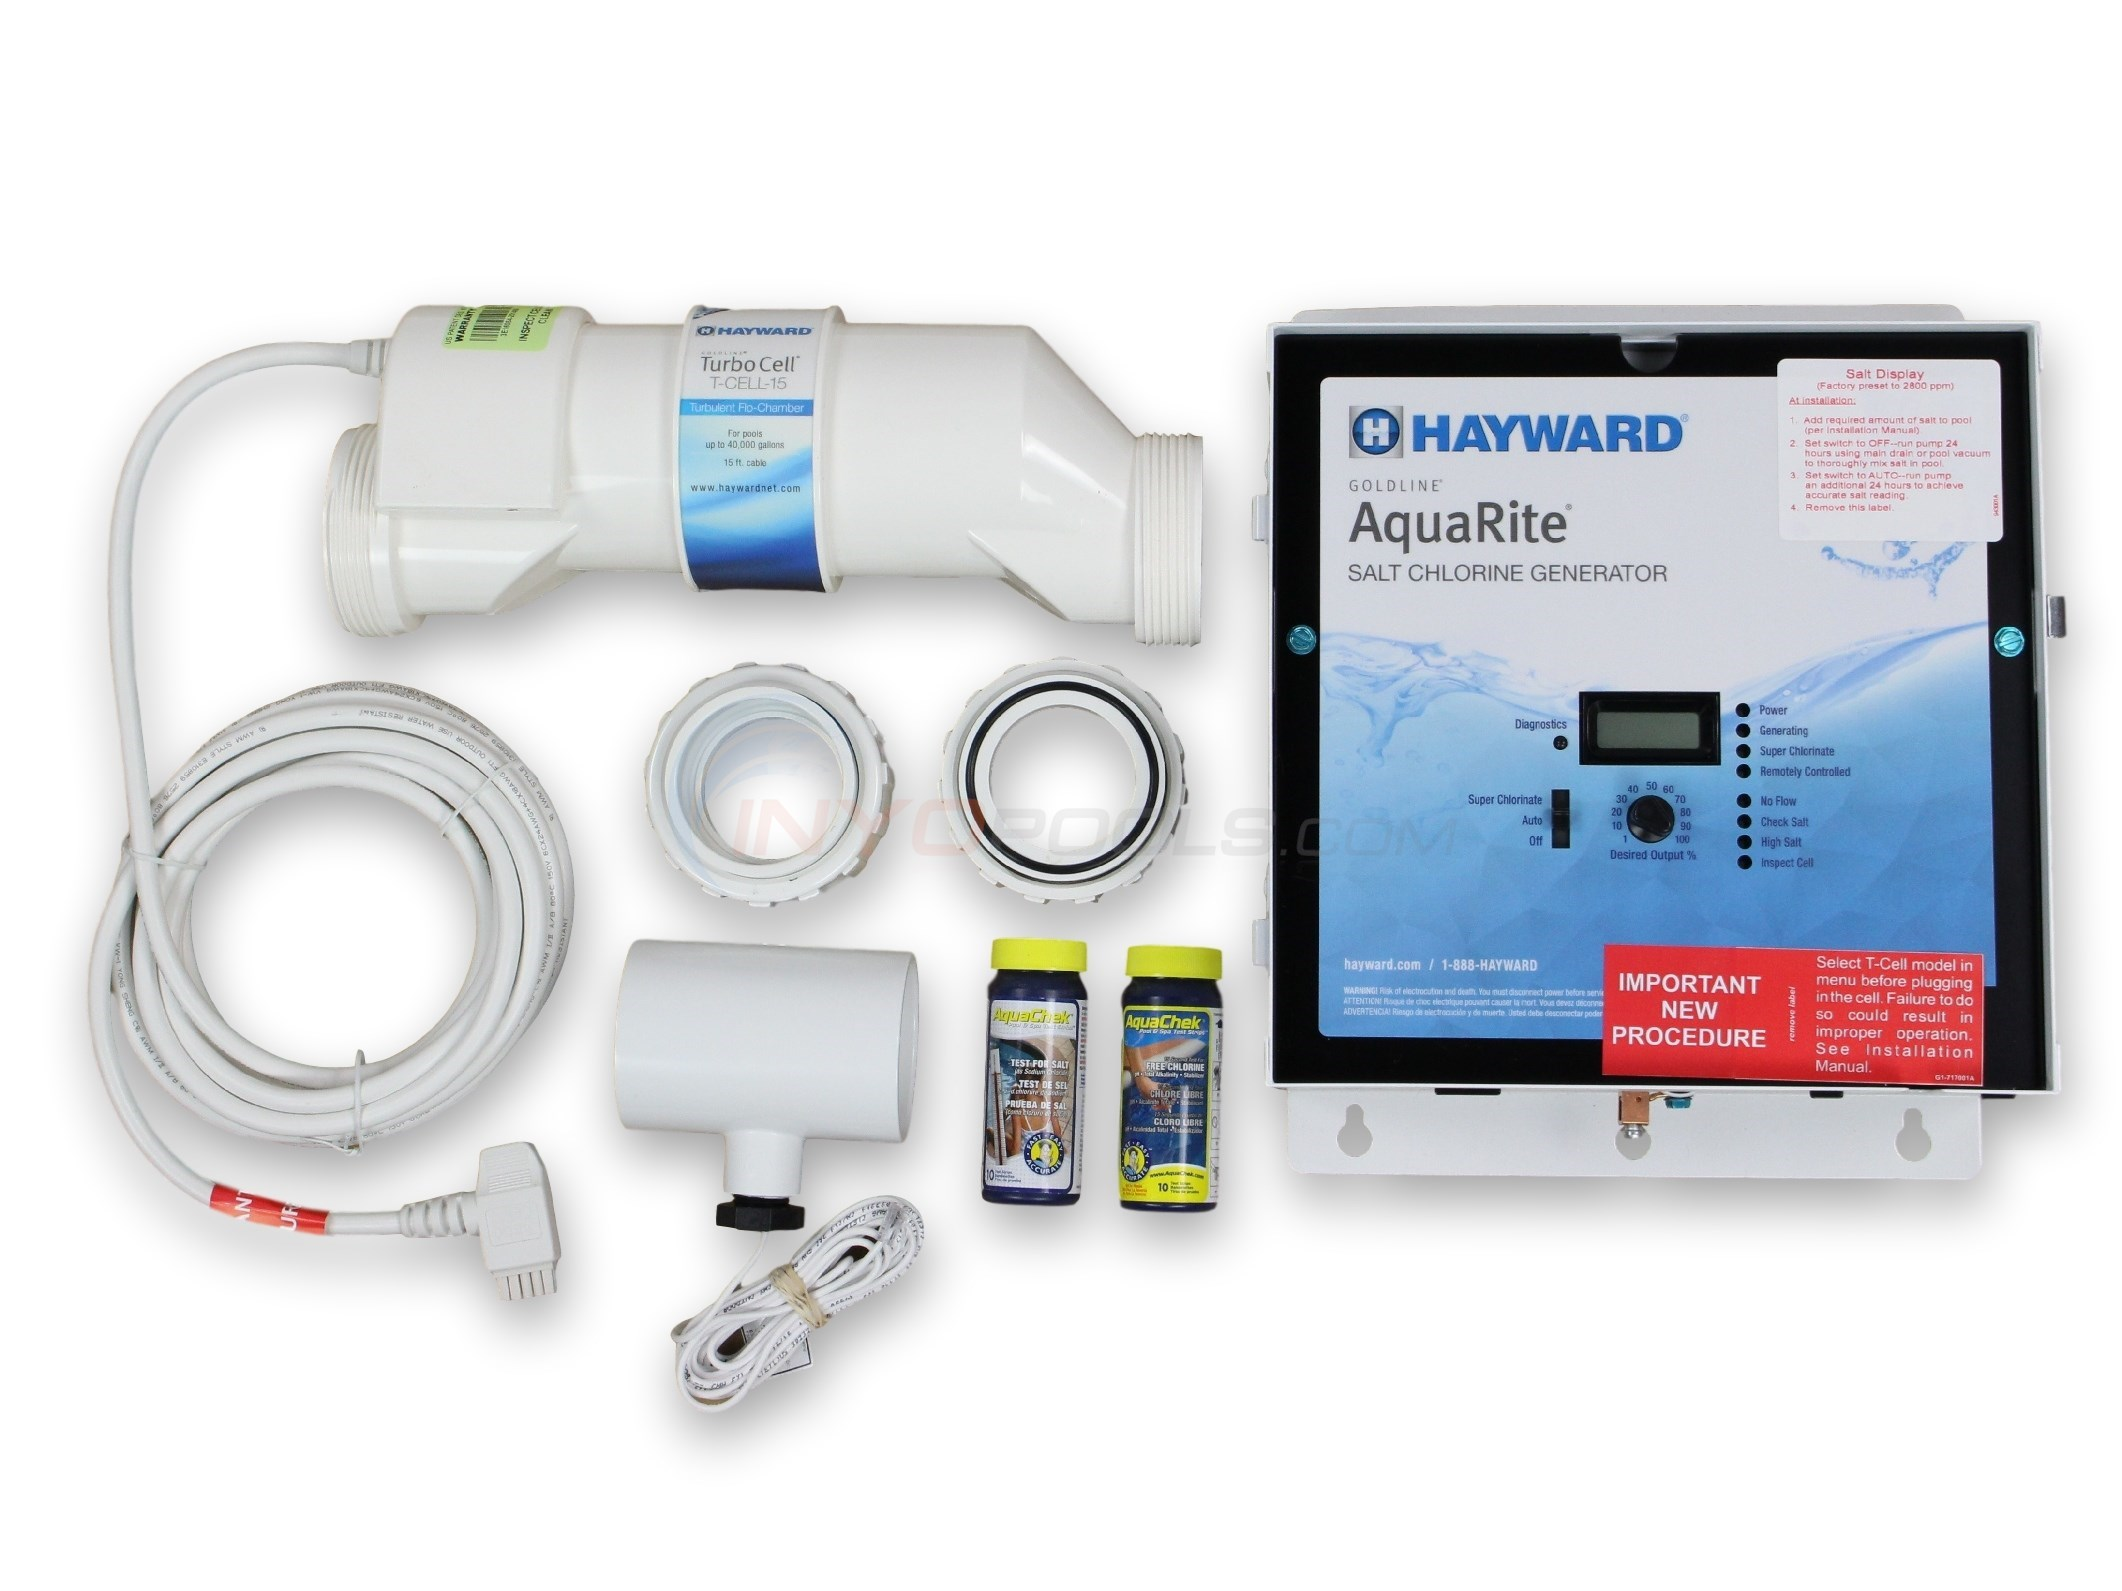 How To Troubleshoot A Hayward Aqua Rite You May Also Read Automatic Ups System Wiring Diagram As With Any Salt Chlorine Generator Tune Are Needed From Time Troubleshooting Can Be Quick And Simple